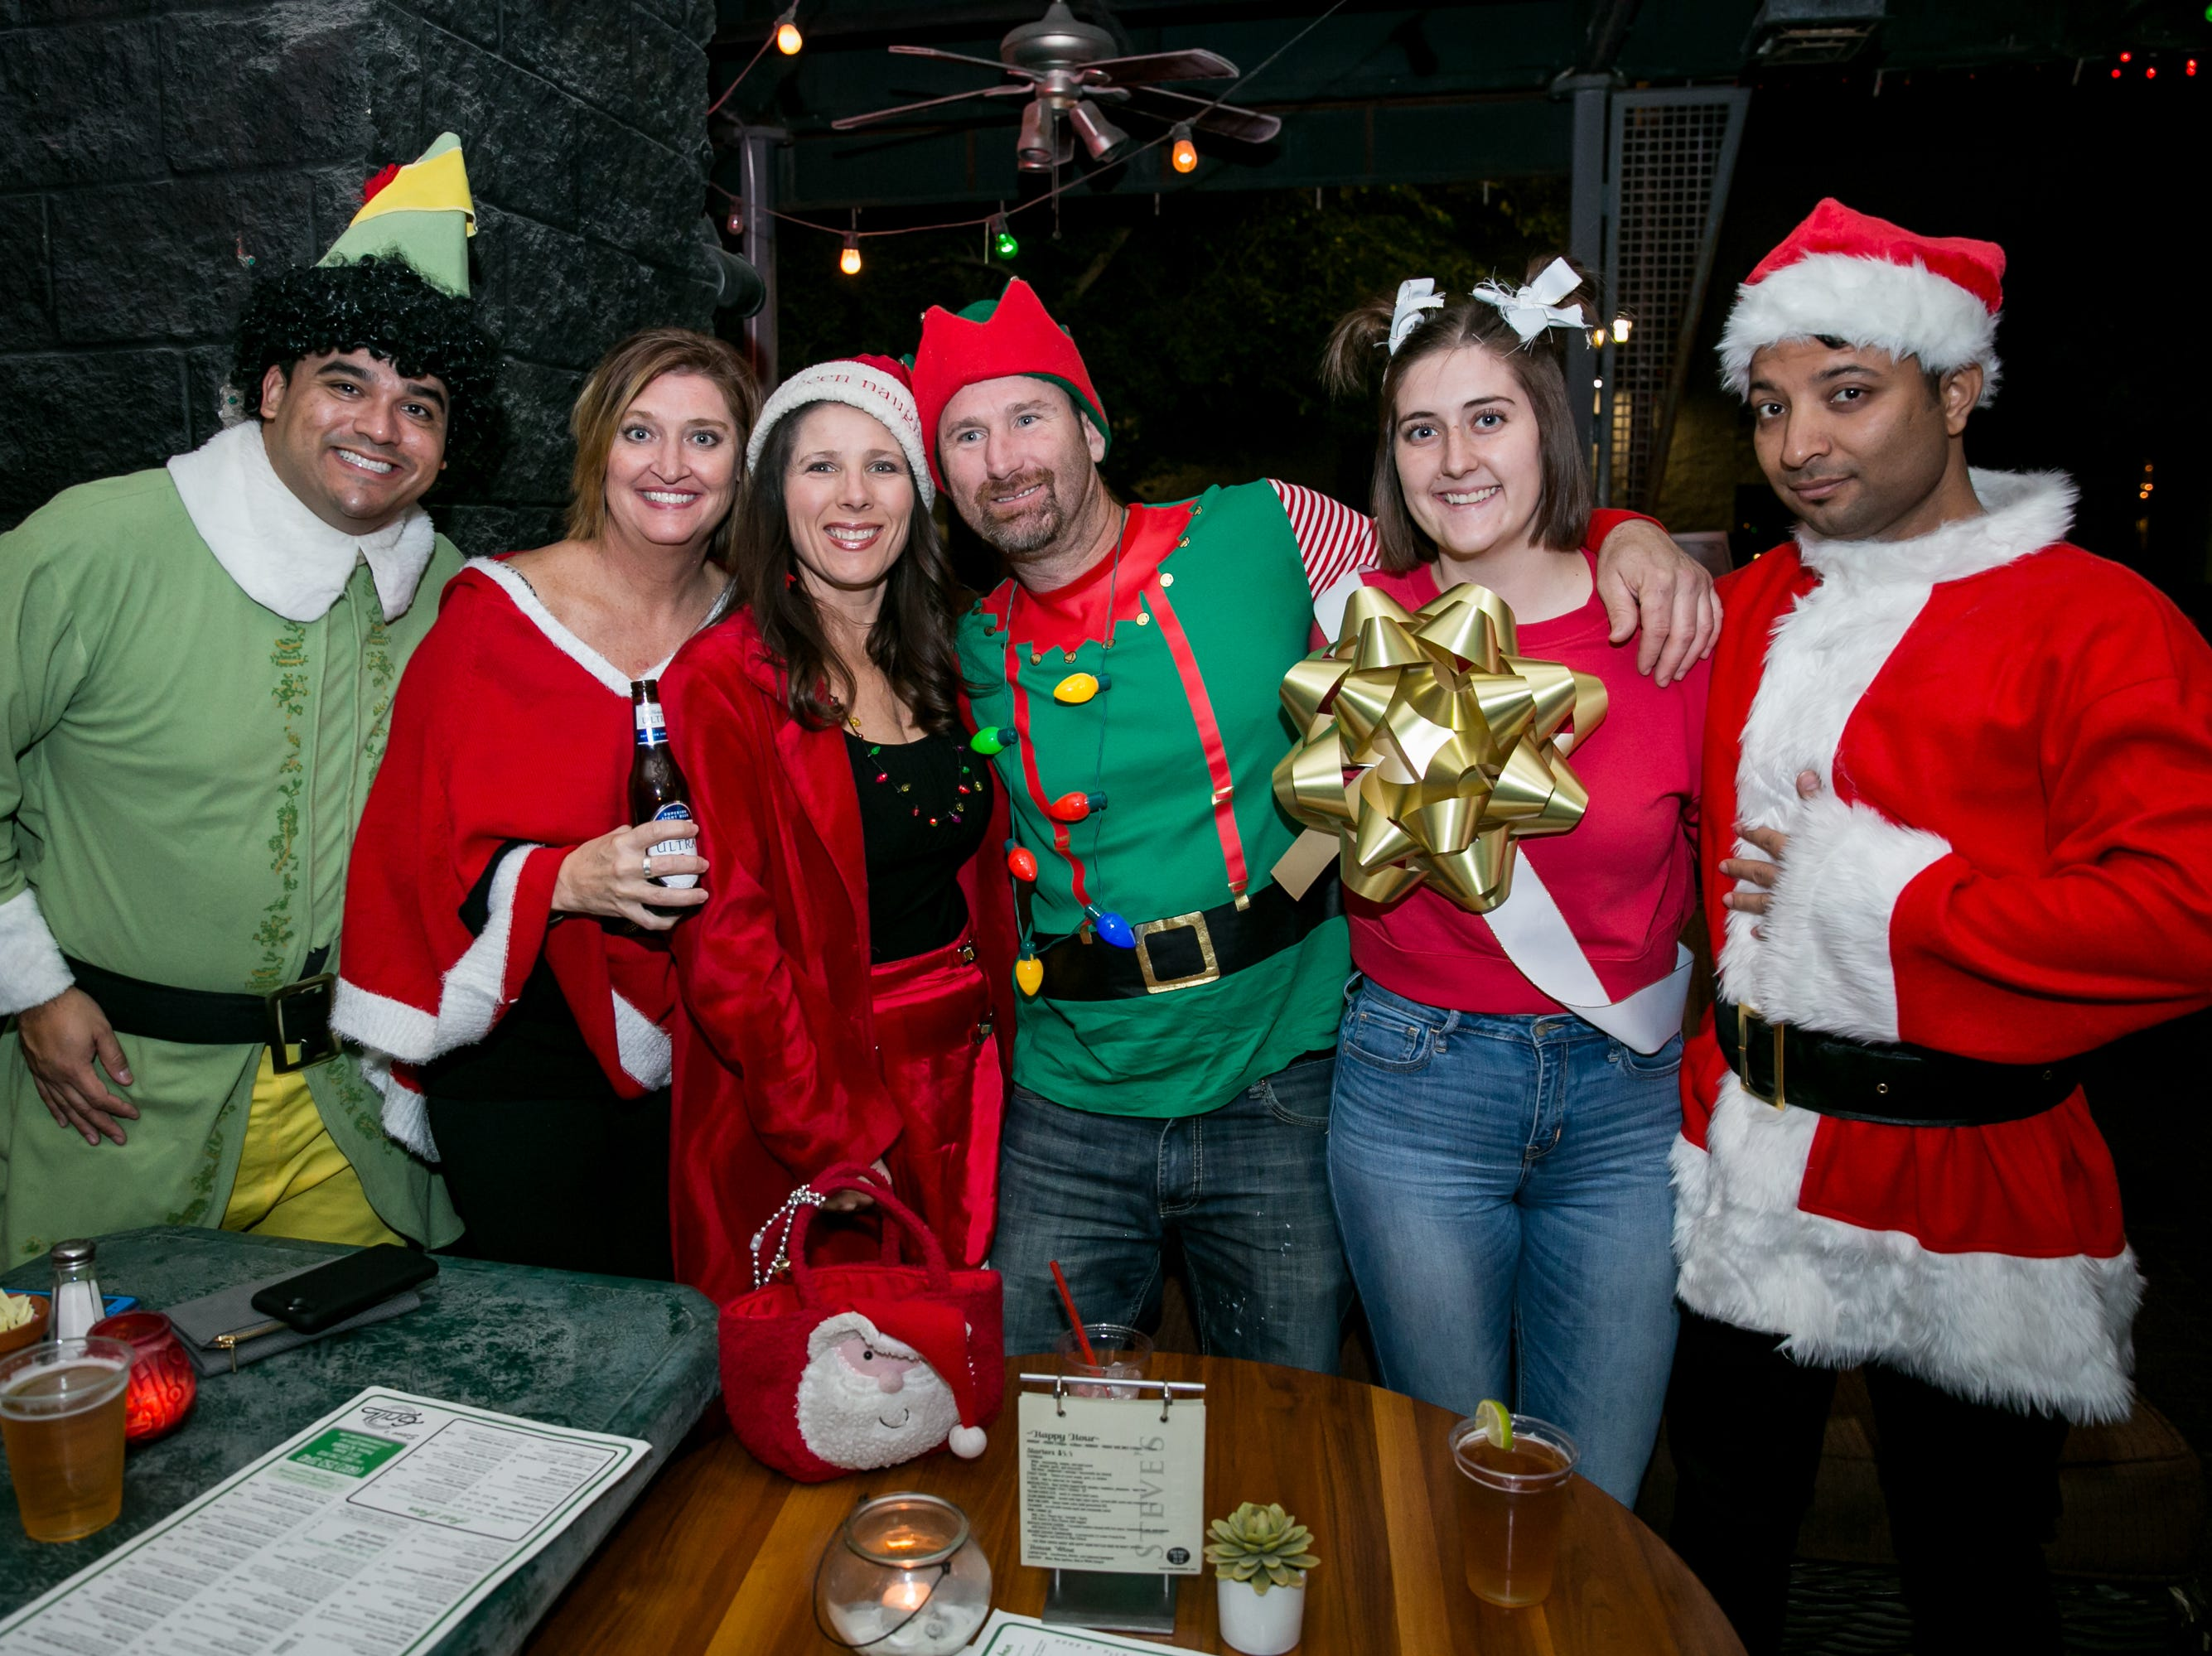 This group got festive at Steve's Greenhouse Grill during Santarchy on Saturday, December 8, 2018.